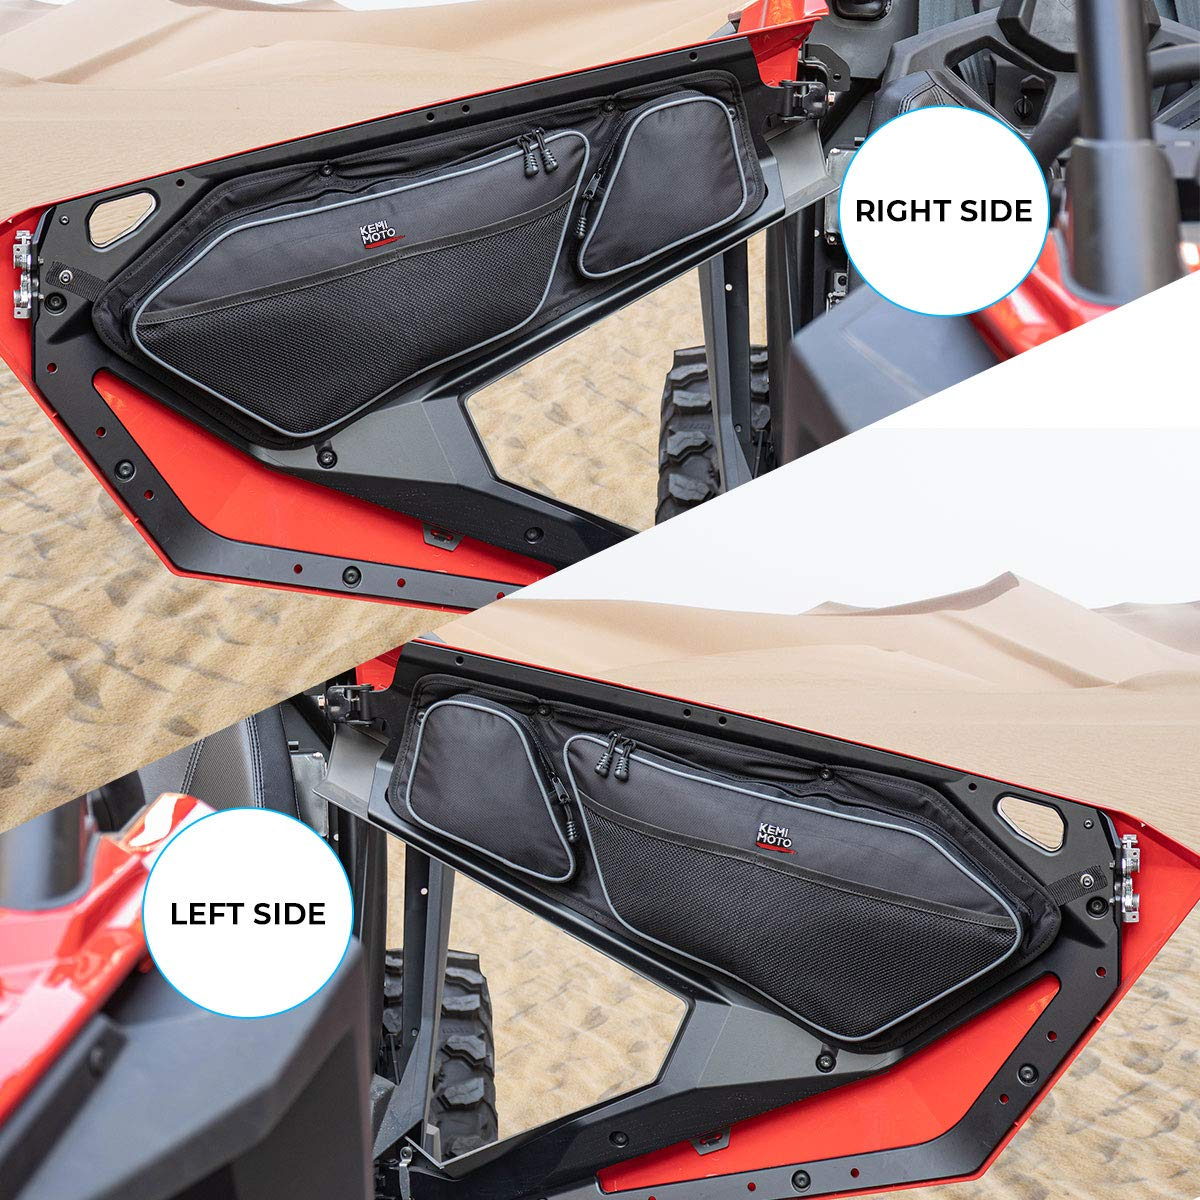 KEMIMOTO 1680D RZR Storage Bag with Removable Knee Pad and PVC Wear Resistant Zippers Compatible with 2020 Polaris RZR PRO XP 2020 RZR PRO XP Door Bags